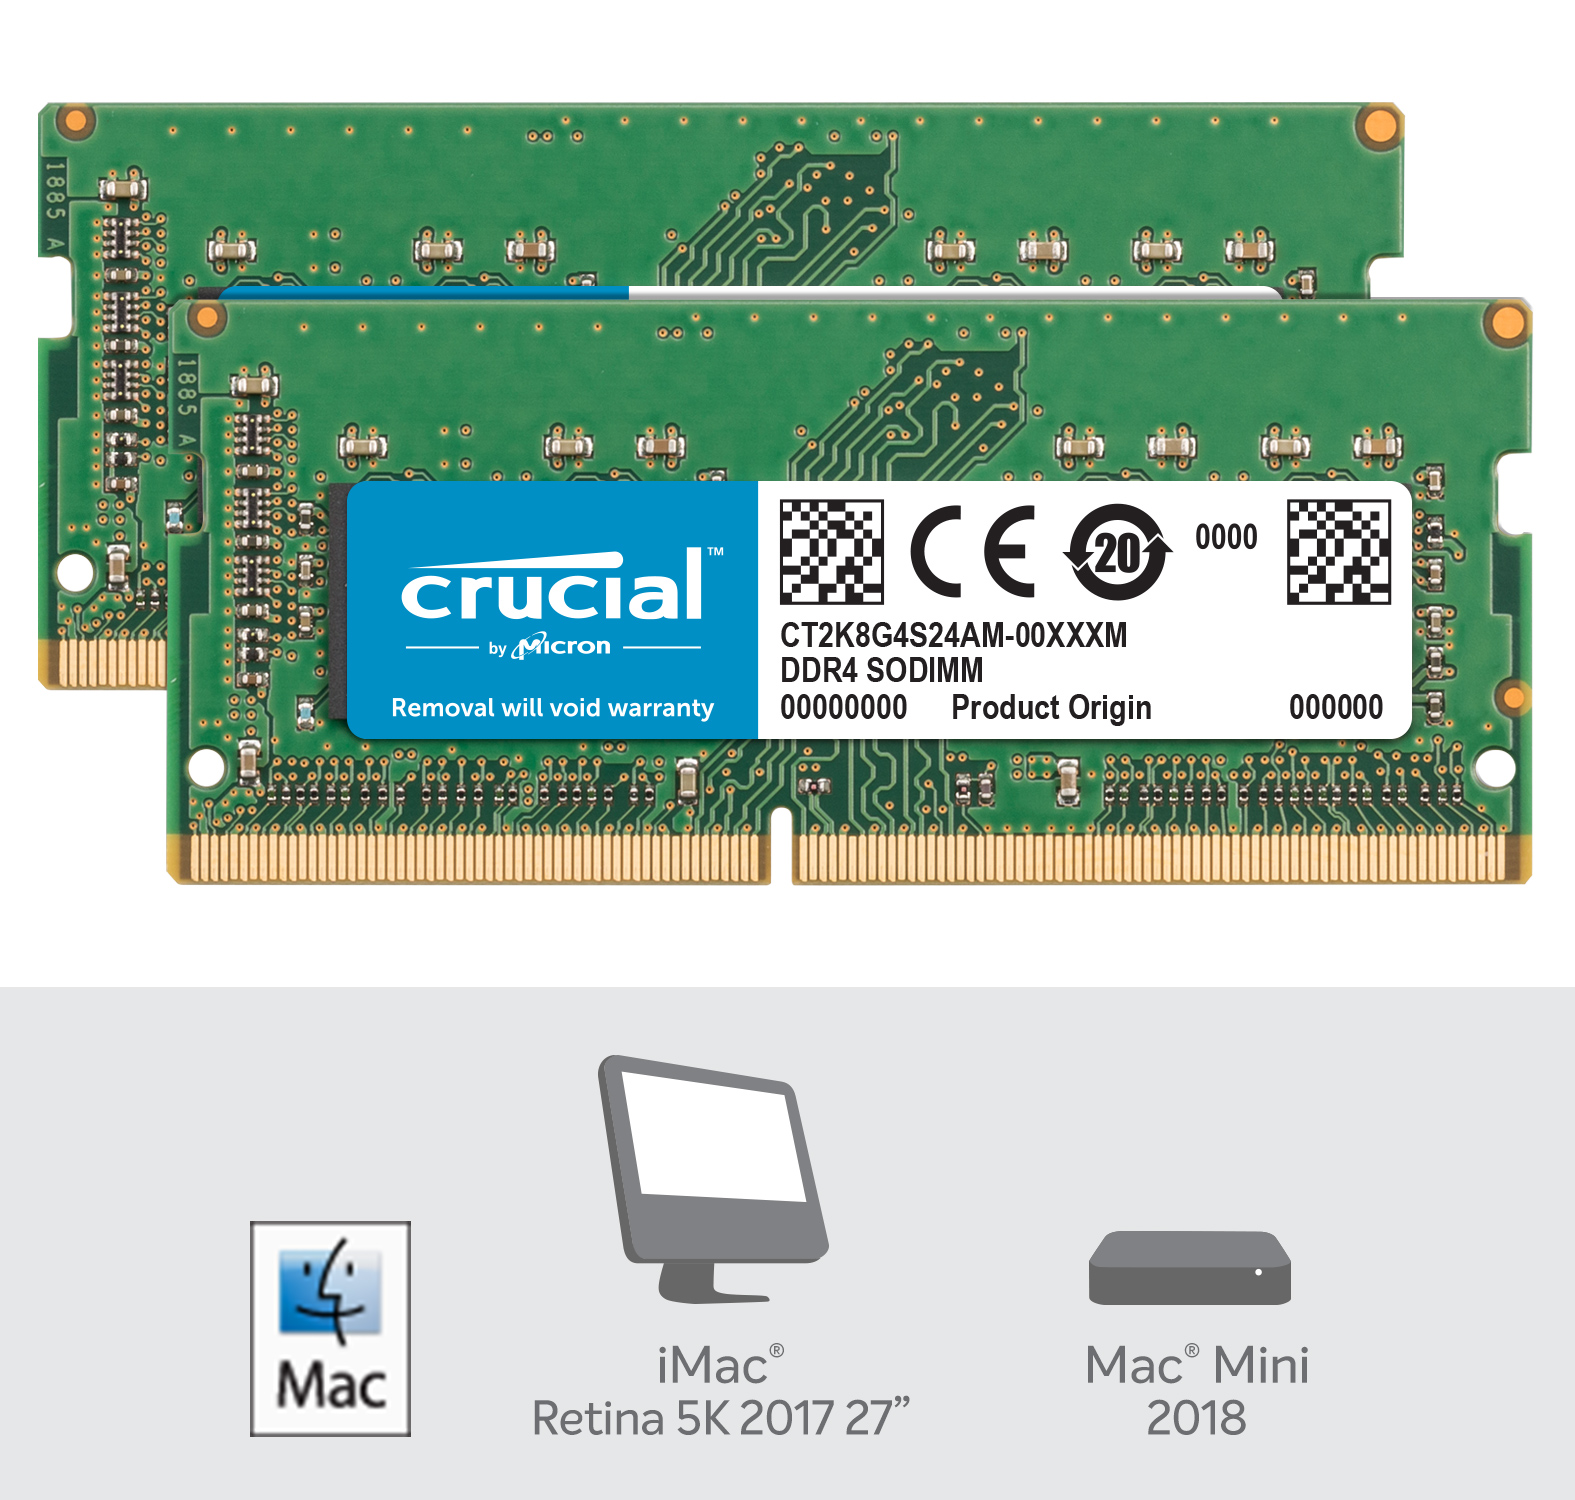 Crucial 16GB Kit (2 x 8GB) DDR4-2400 SODIMM Memory for Mac- view 2